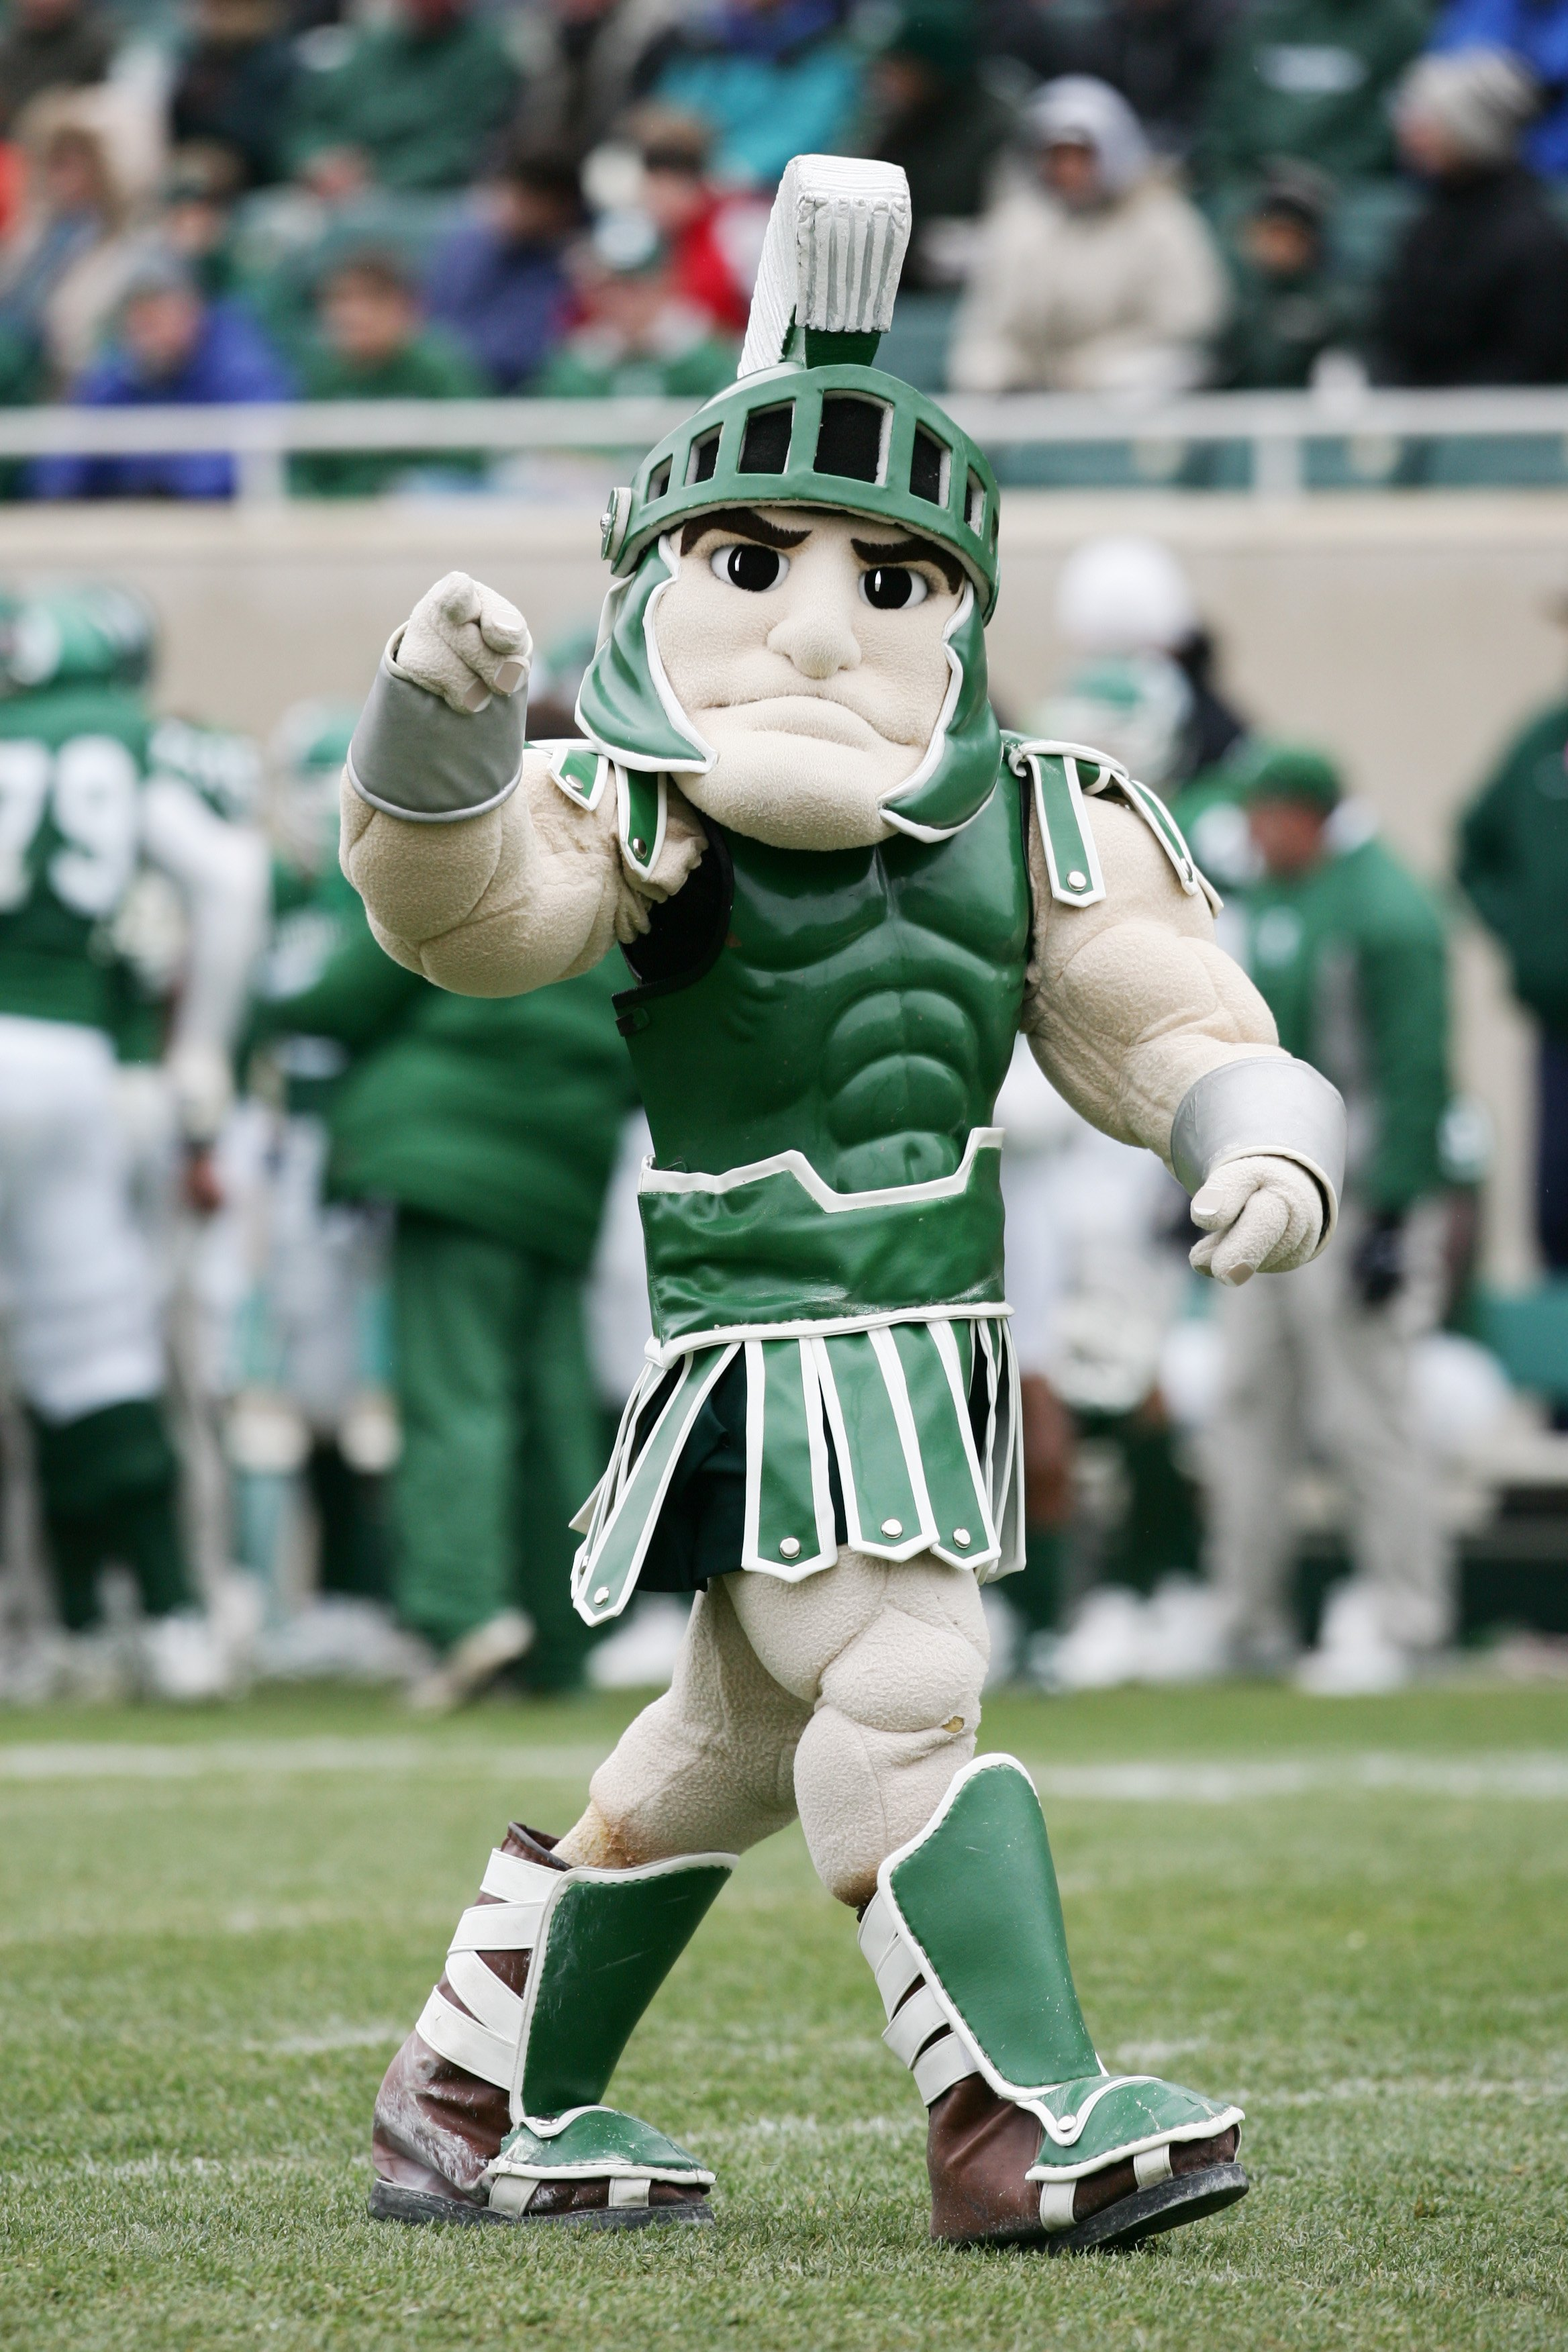 EAST LANSING, MI - NOVEMBER 11:  The Michigan State Spartans mascot Sparty walks on the field during the game against the Minnesota Golden Gophers at Spartan Stadium on November 11, 2006 in East Lansing, Michigan. Minnesota won 31-18. (Photo by Harry How/